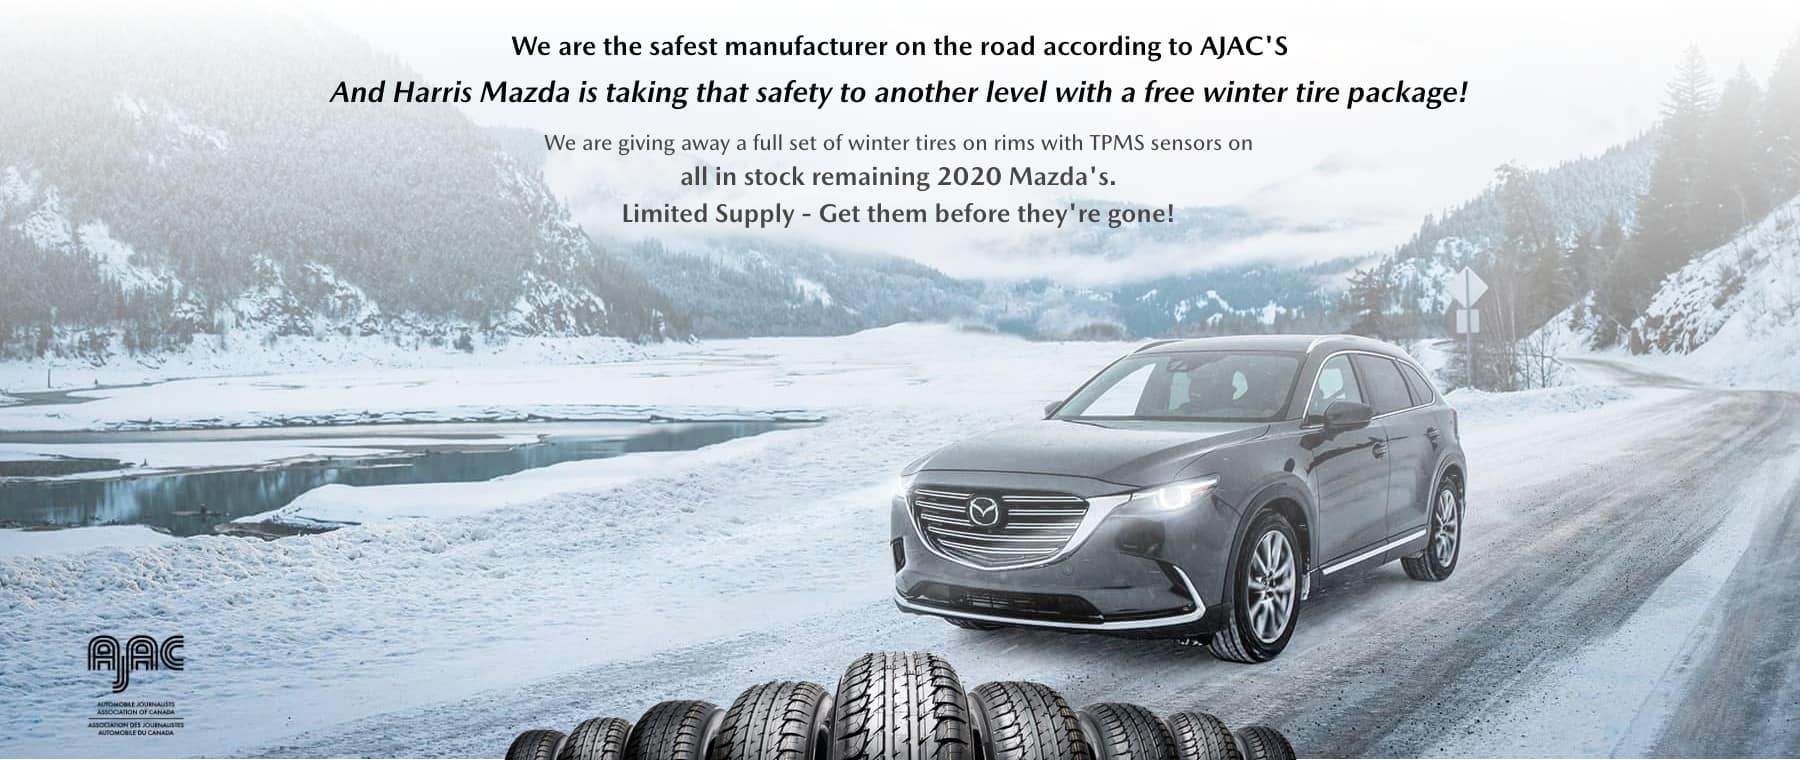 Harris Mazda – Winter Tire Included on all 2020's C